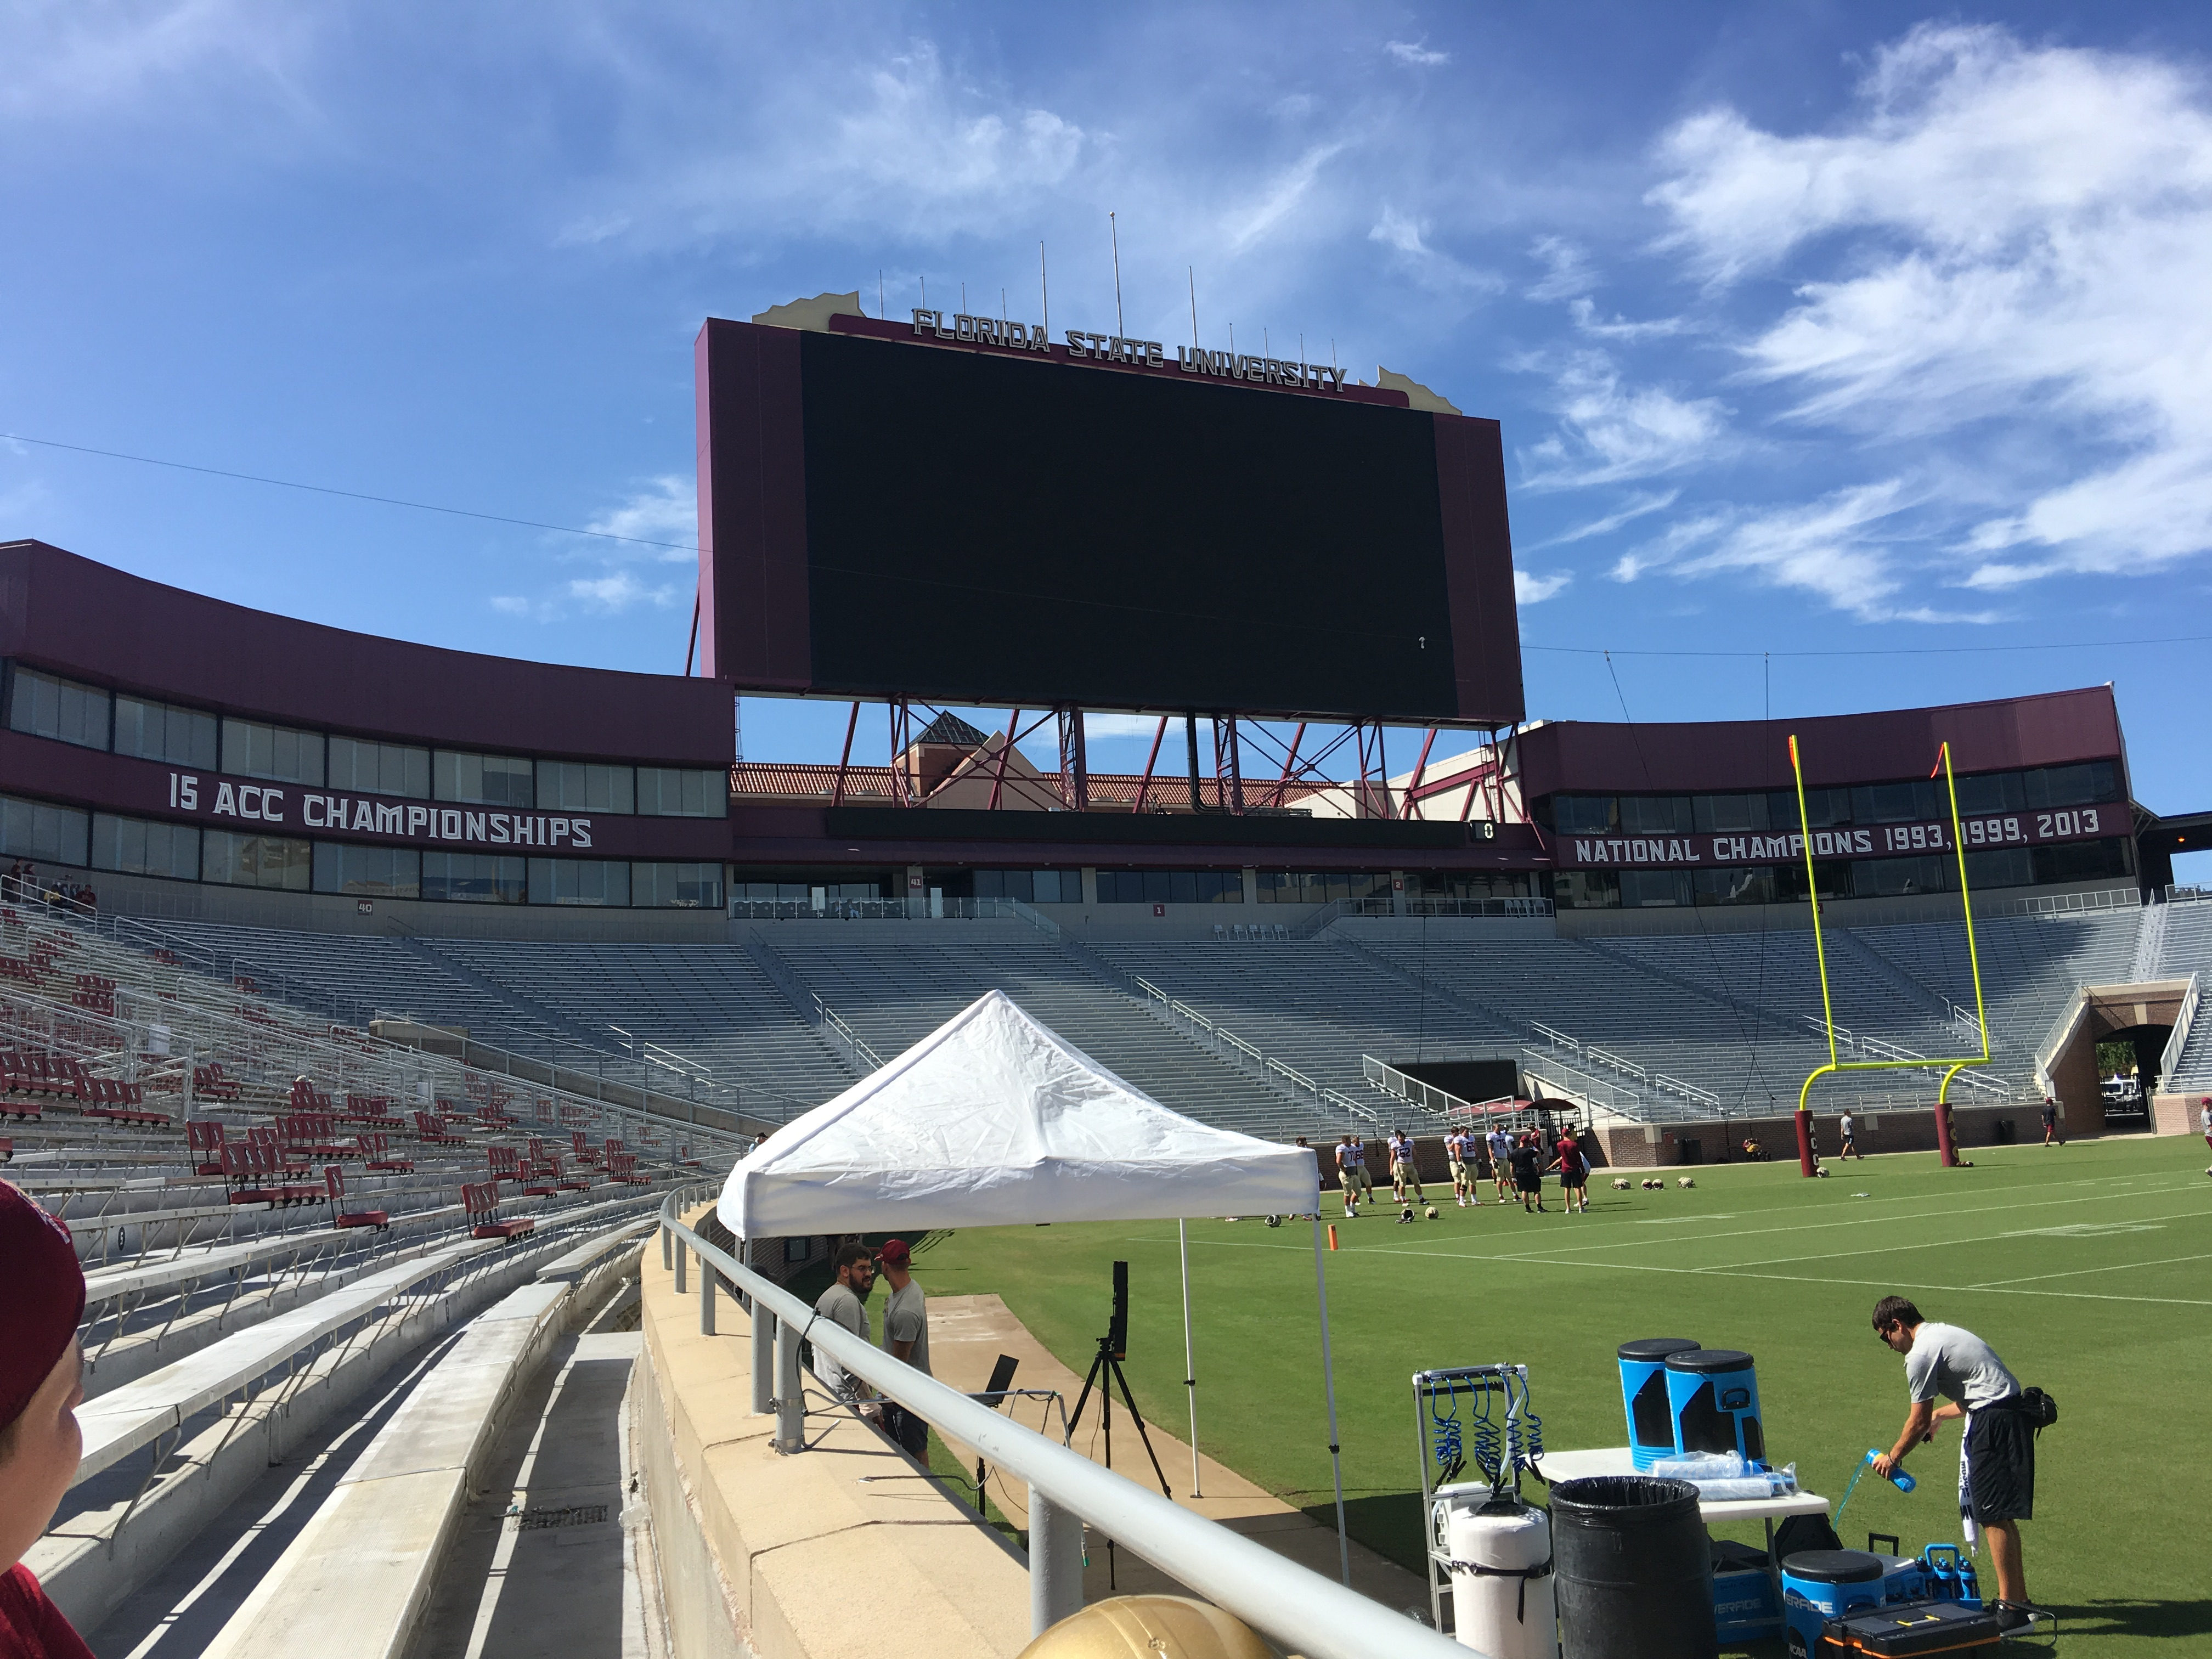 The renovated North End stands and screen of Doak Campbell Stadium.jpg English: The renovated North End stands and screen of Doak Campbell